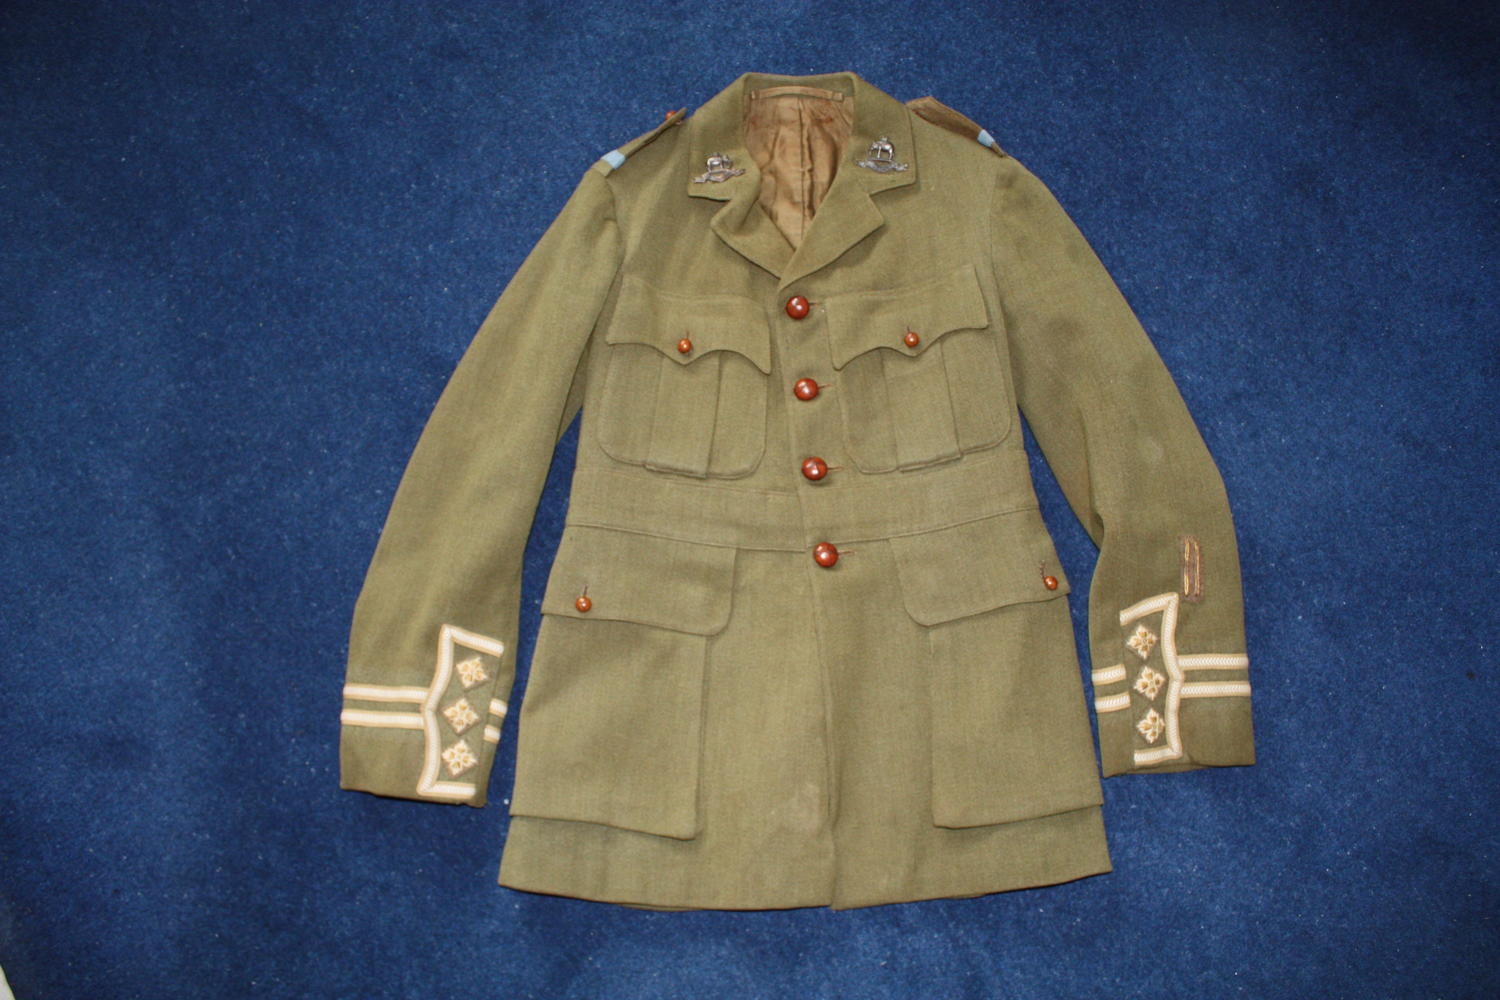 WW1 BRITISH CUFF RANK SERVICE DRESS KHAKI TUNIC WITH BATTLE INSIGNIA